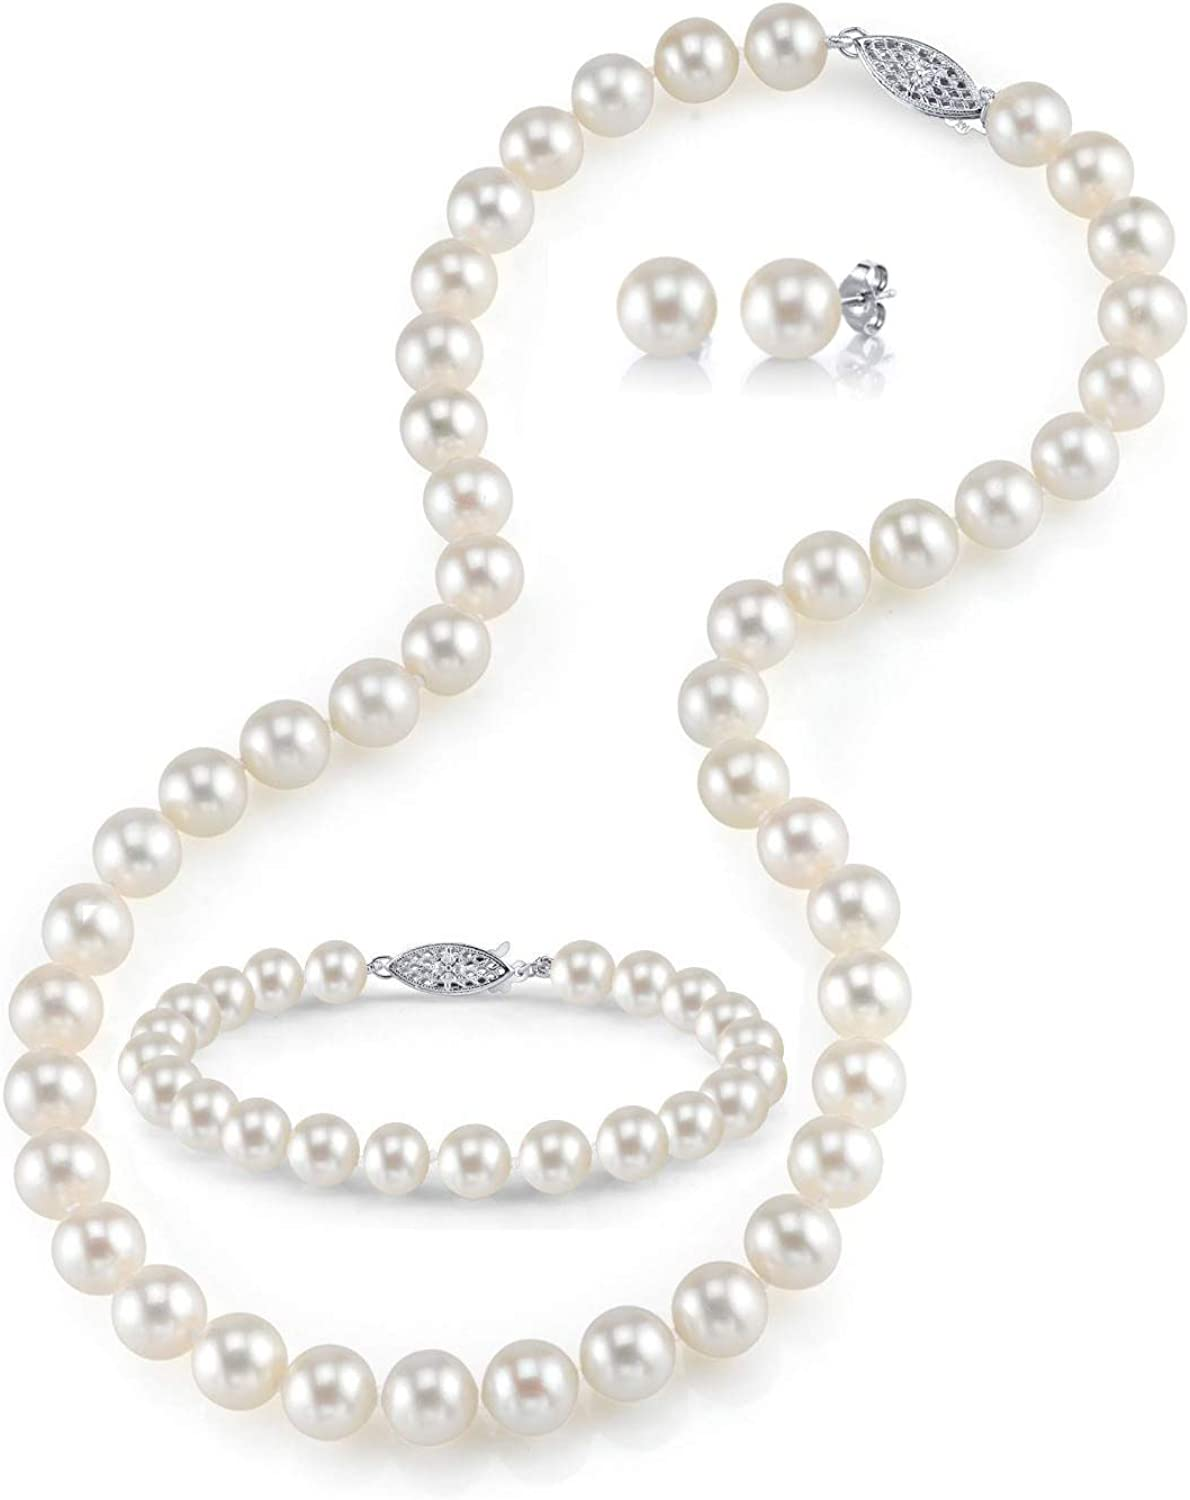 THE PEARL SOURCE 14K Gold 6.5-7mm Round White Akoya Cultured Pearl Necklace, Bracelet & Earrings Set in 17